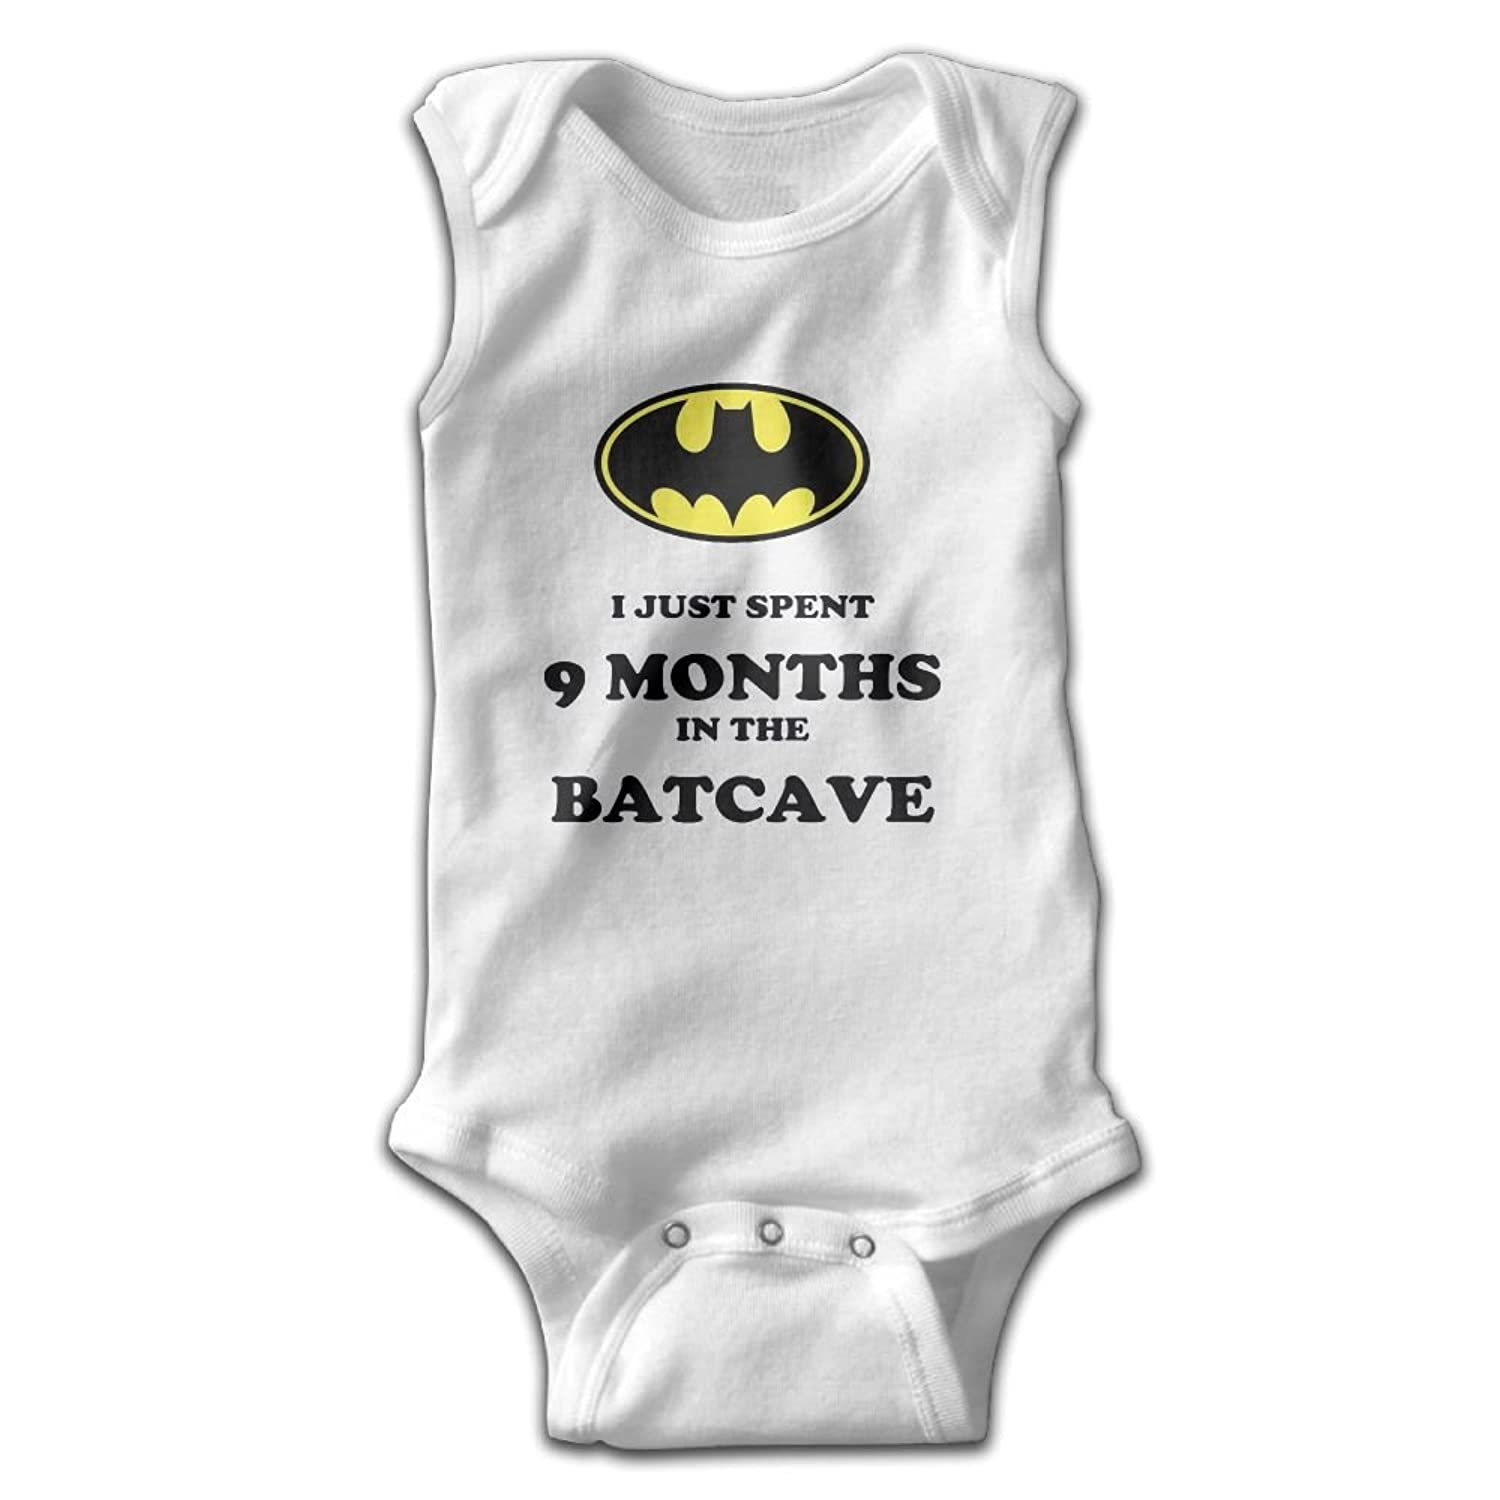 eba5cf844 Qjjfoei-jia Baby I Just Spent 9 Months in The Bat Cave Convenient Baby  Romper